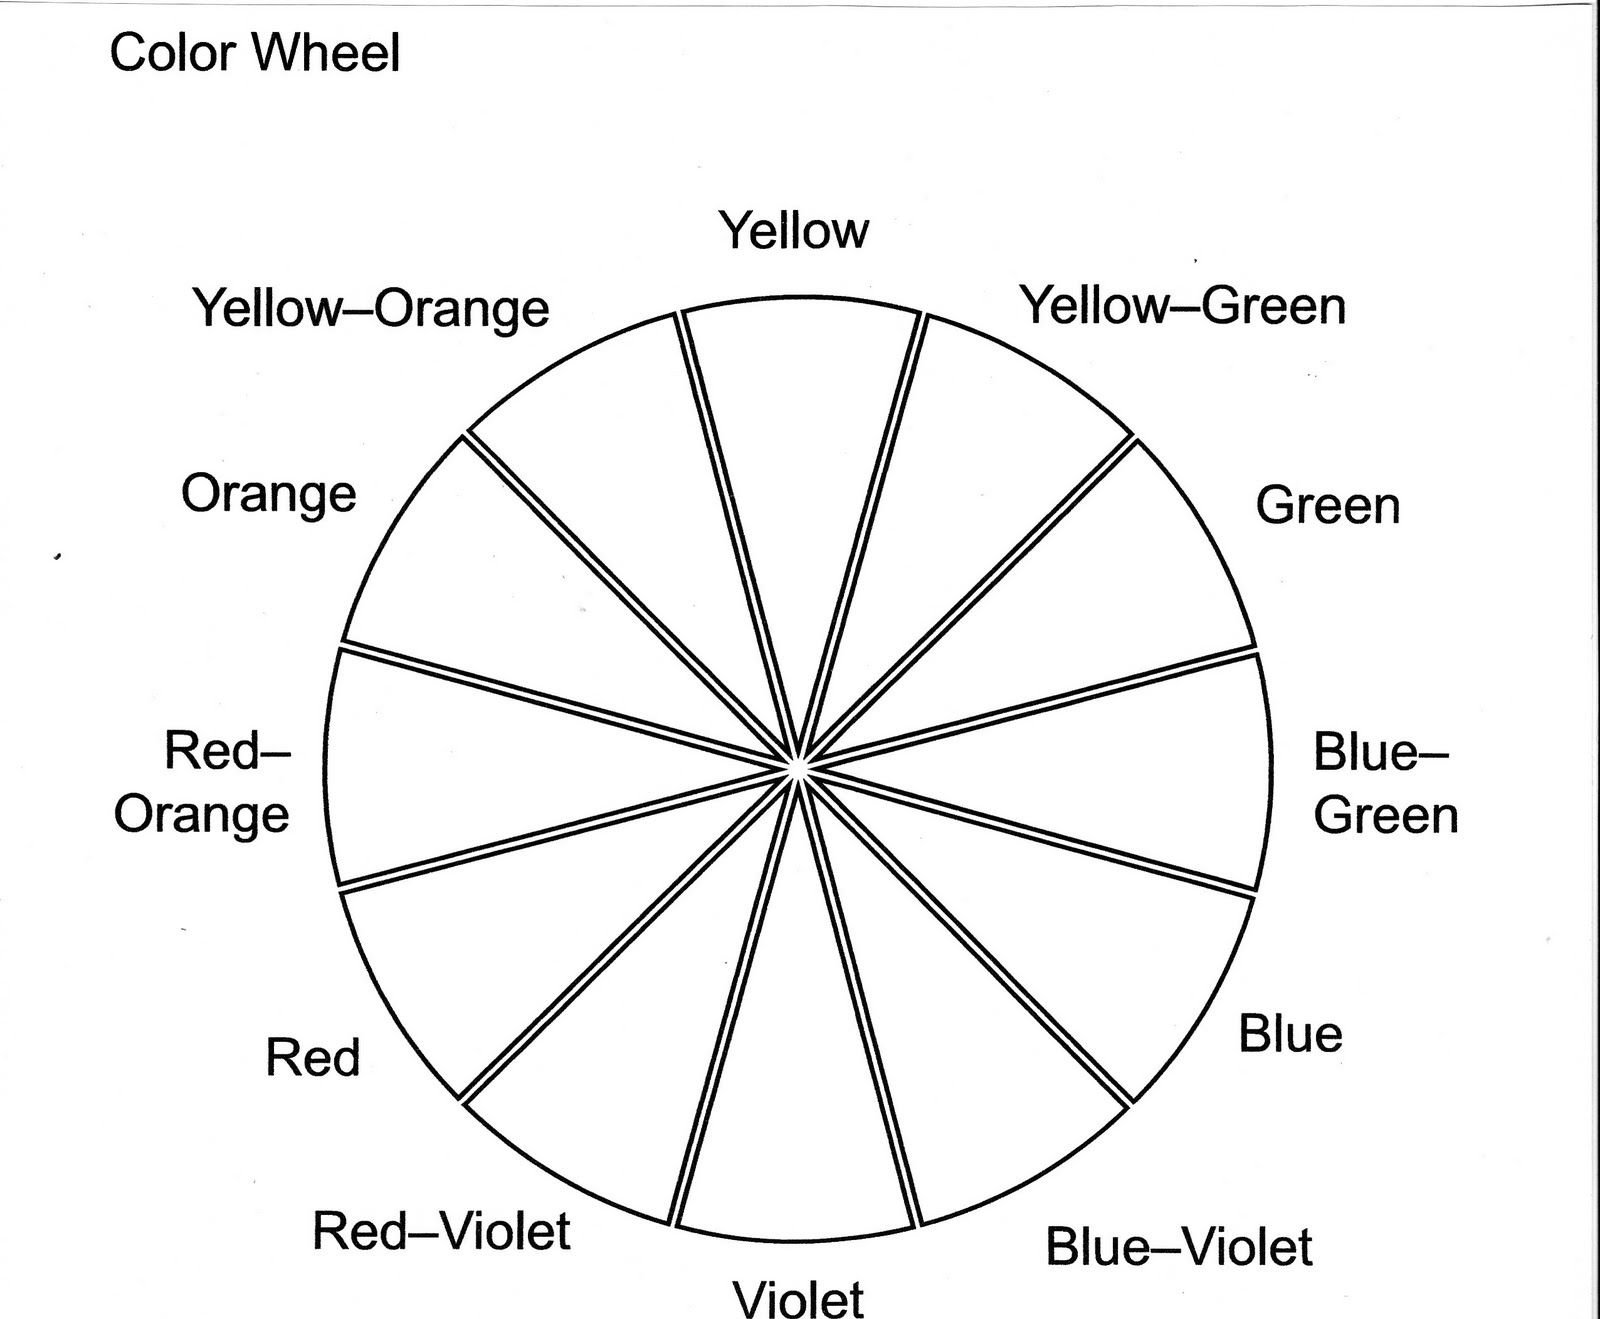 Color Wheel Worksheet Printable In